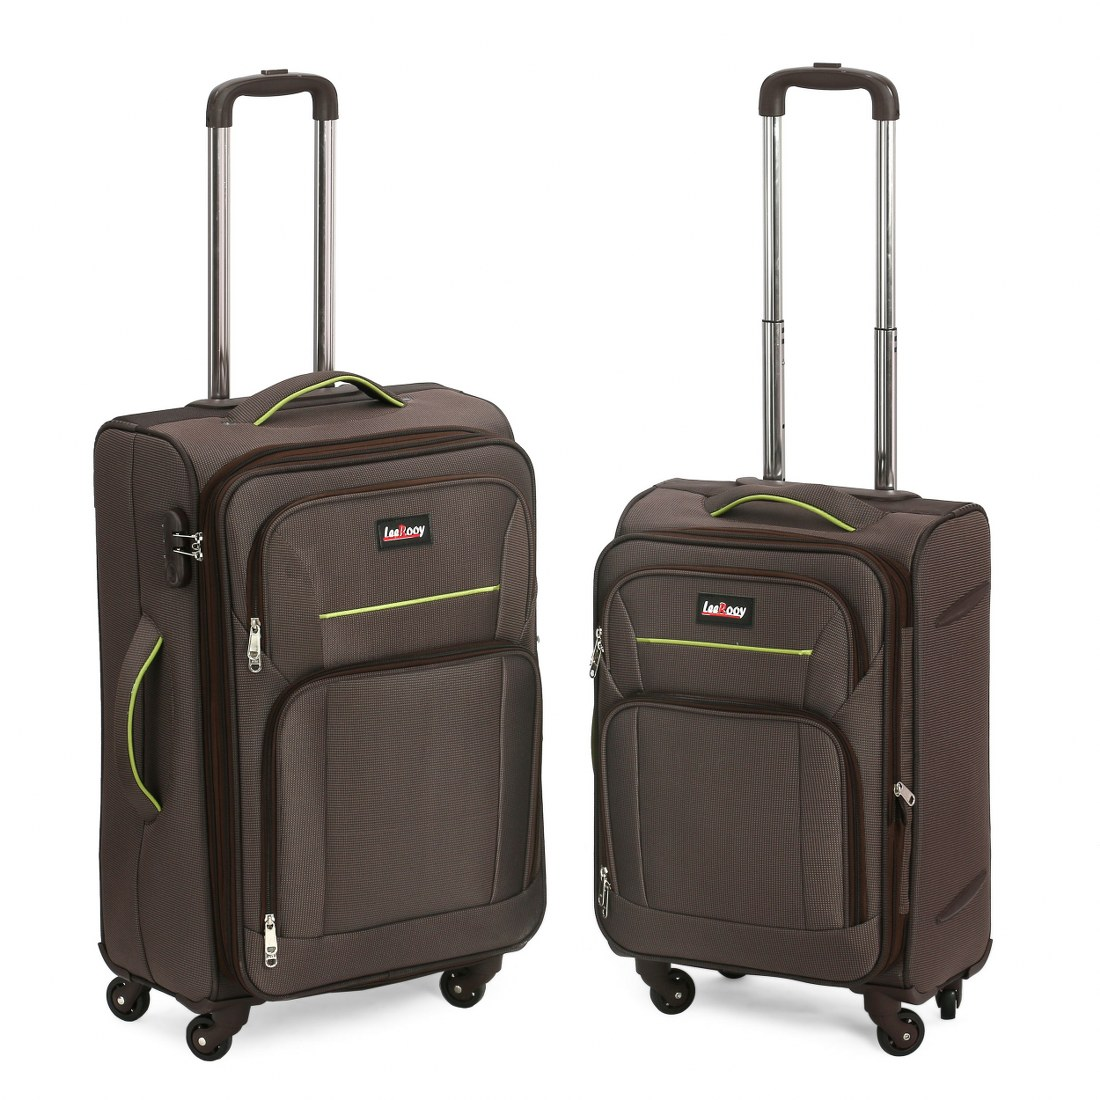 Brown Colour 2 Front Pockets 4 Wheel Trolley Luggage Bag  Combo Set of 2 bags